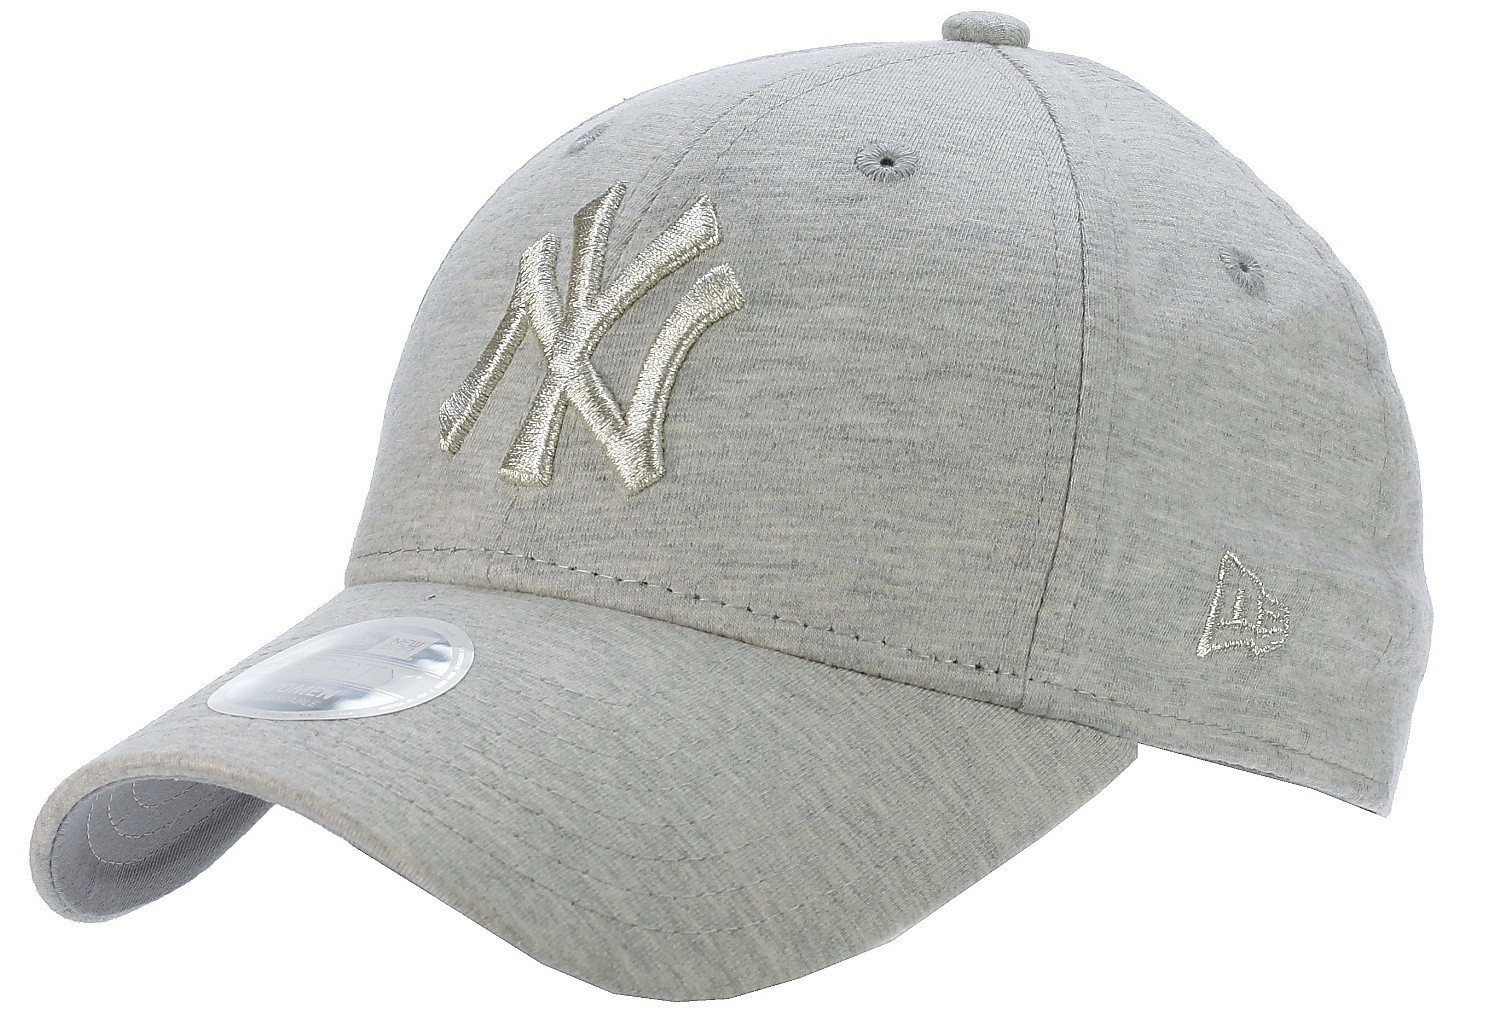 separation shoes 43508 49369 ... glam 3 9forty adjustable hat cf823 e36cd  get cap new era 9fo essential  jersey mlb new york yankees gray silverware glitter 789fe 69dbb